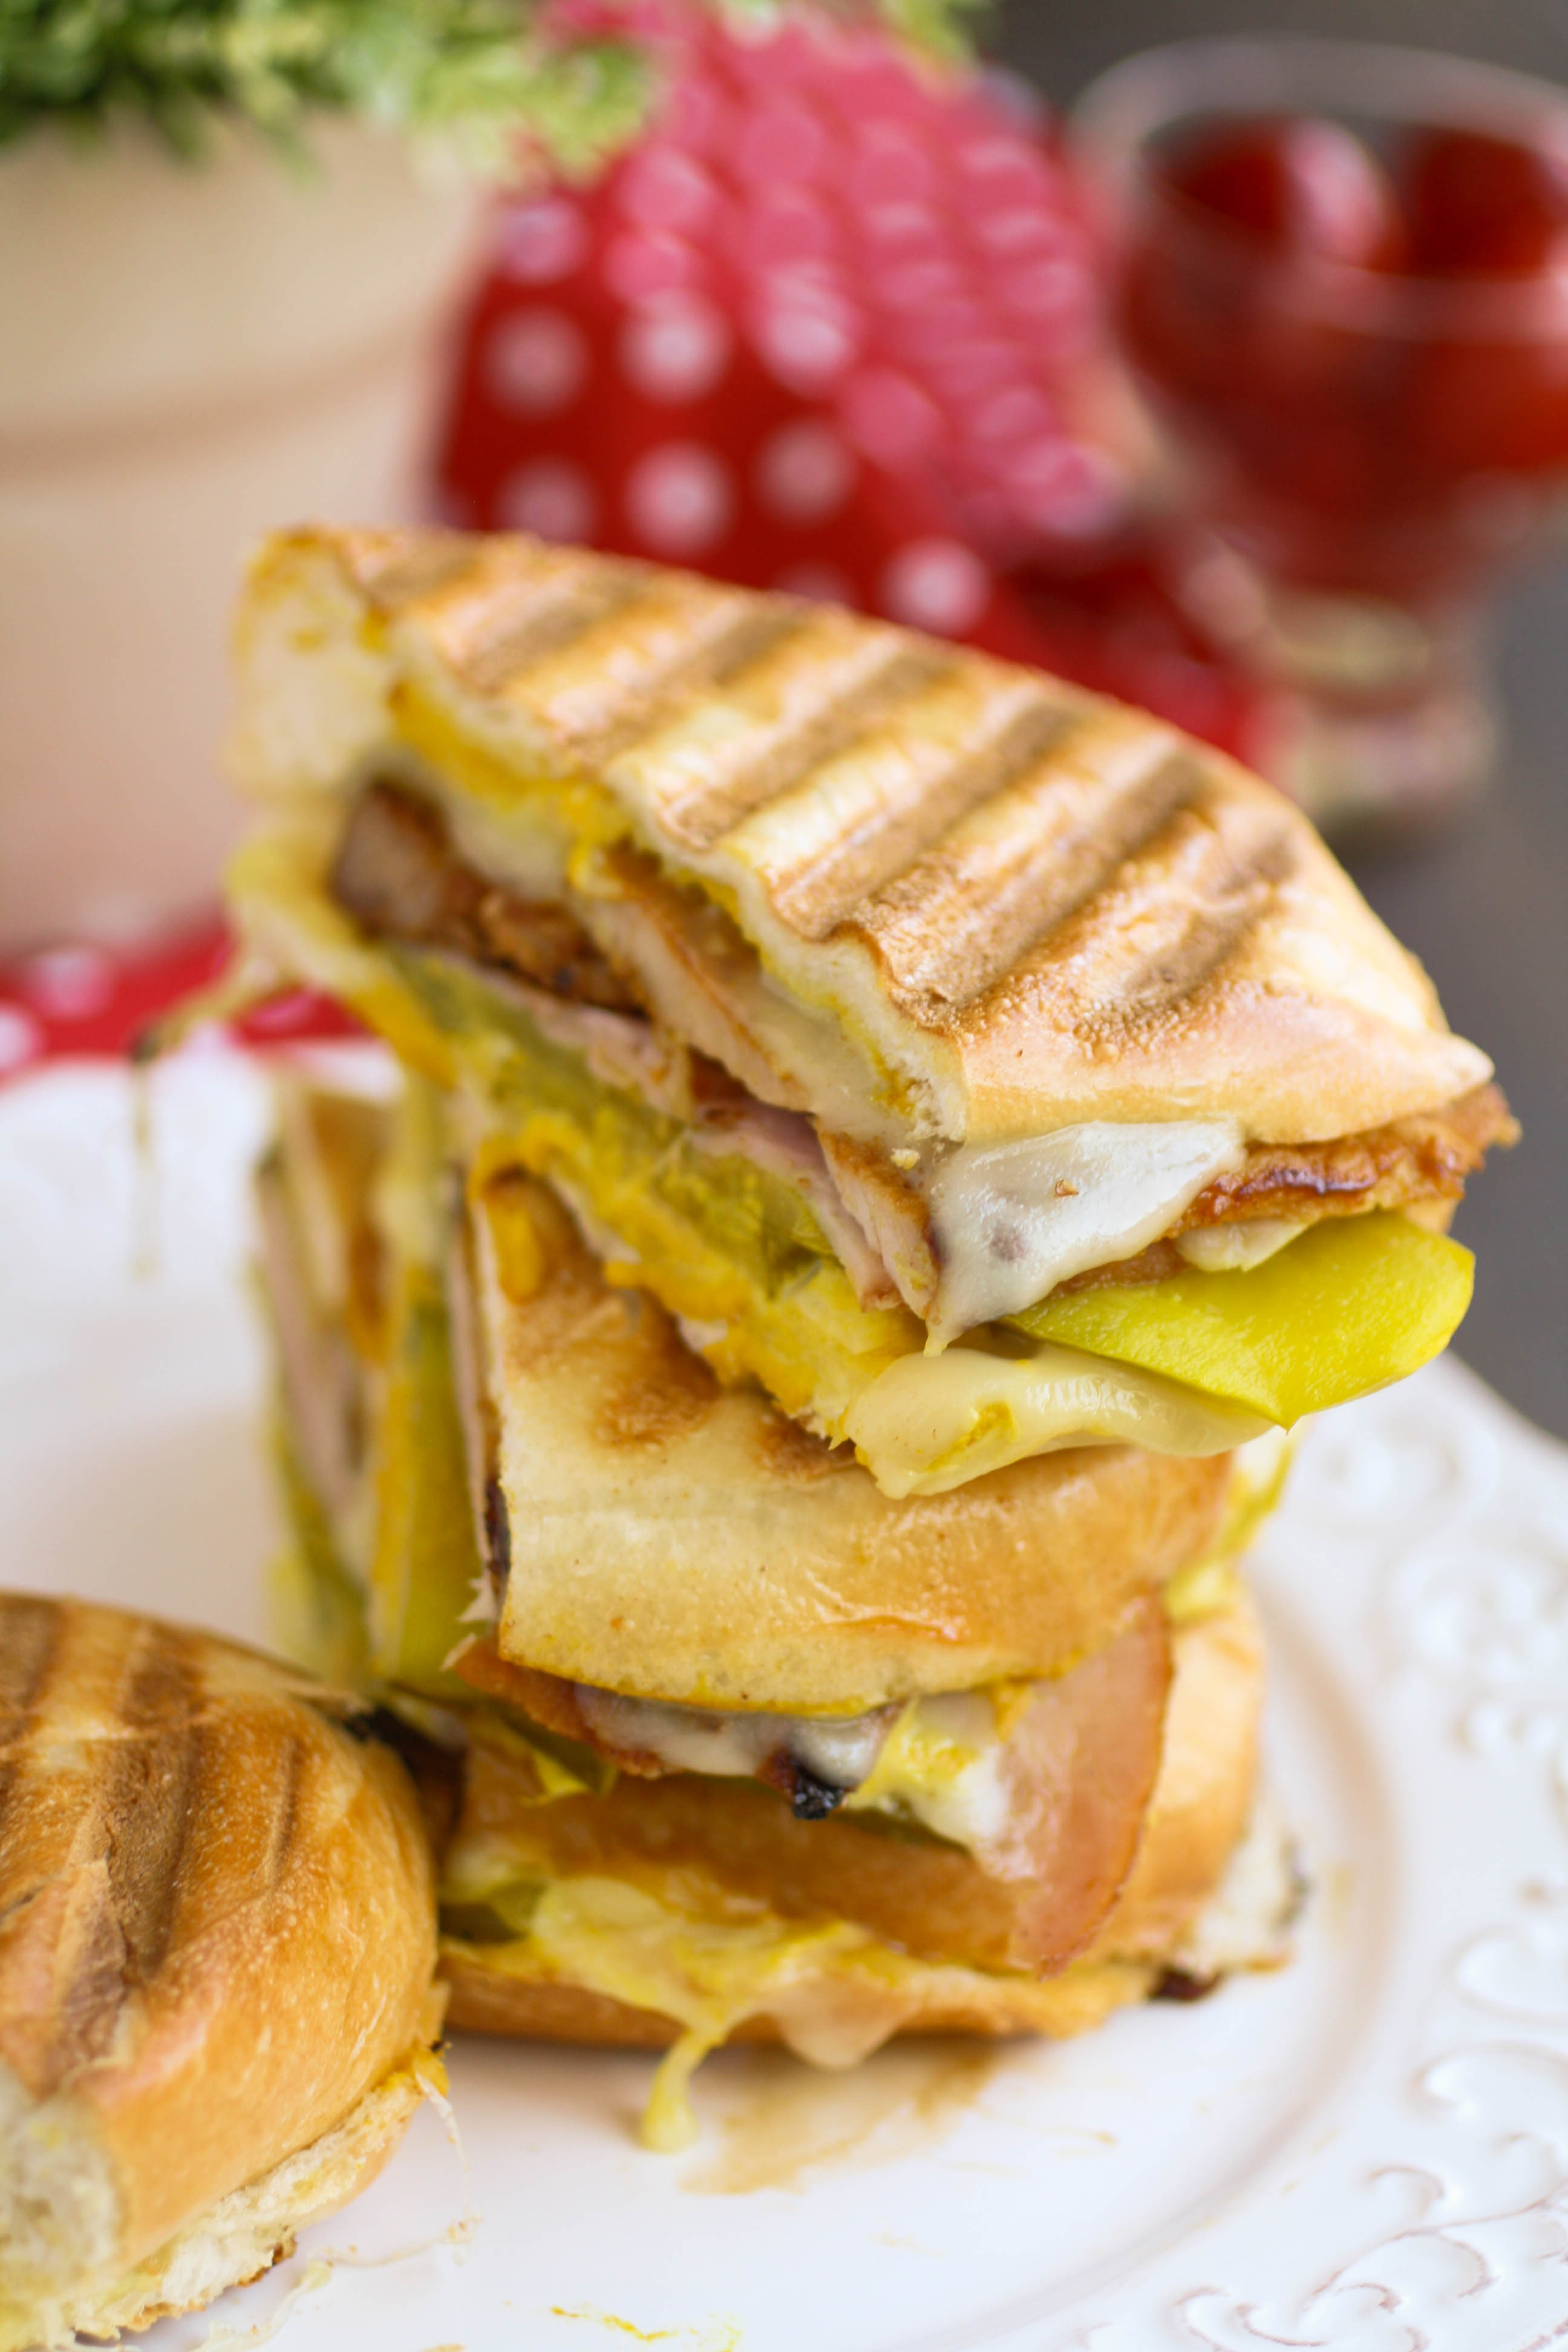 A Cuban sandwich is thick, hearty, and big on flavor. I hope you try this sandwich!